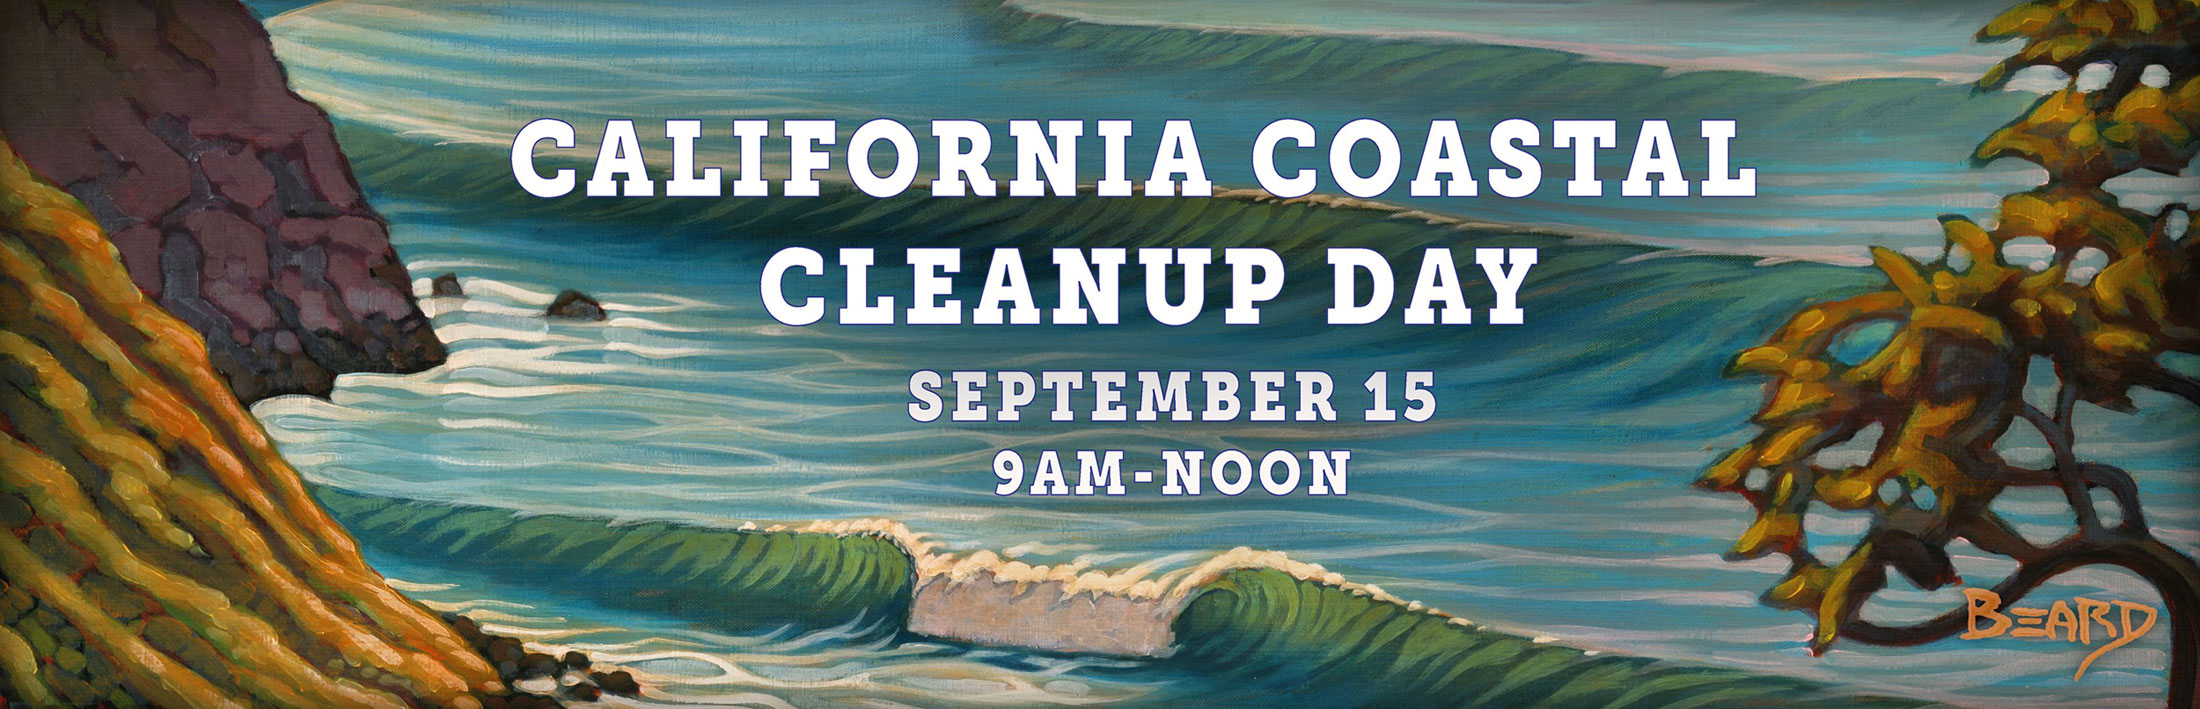 California Coastal Cleanup Day is September 15, 9am-noon